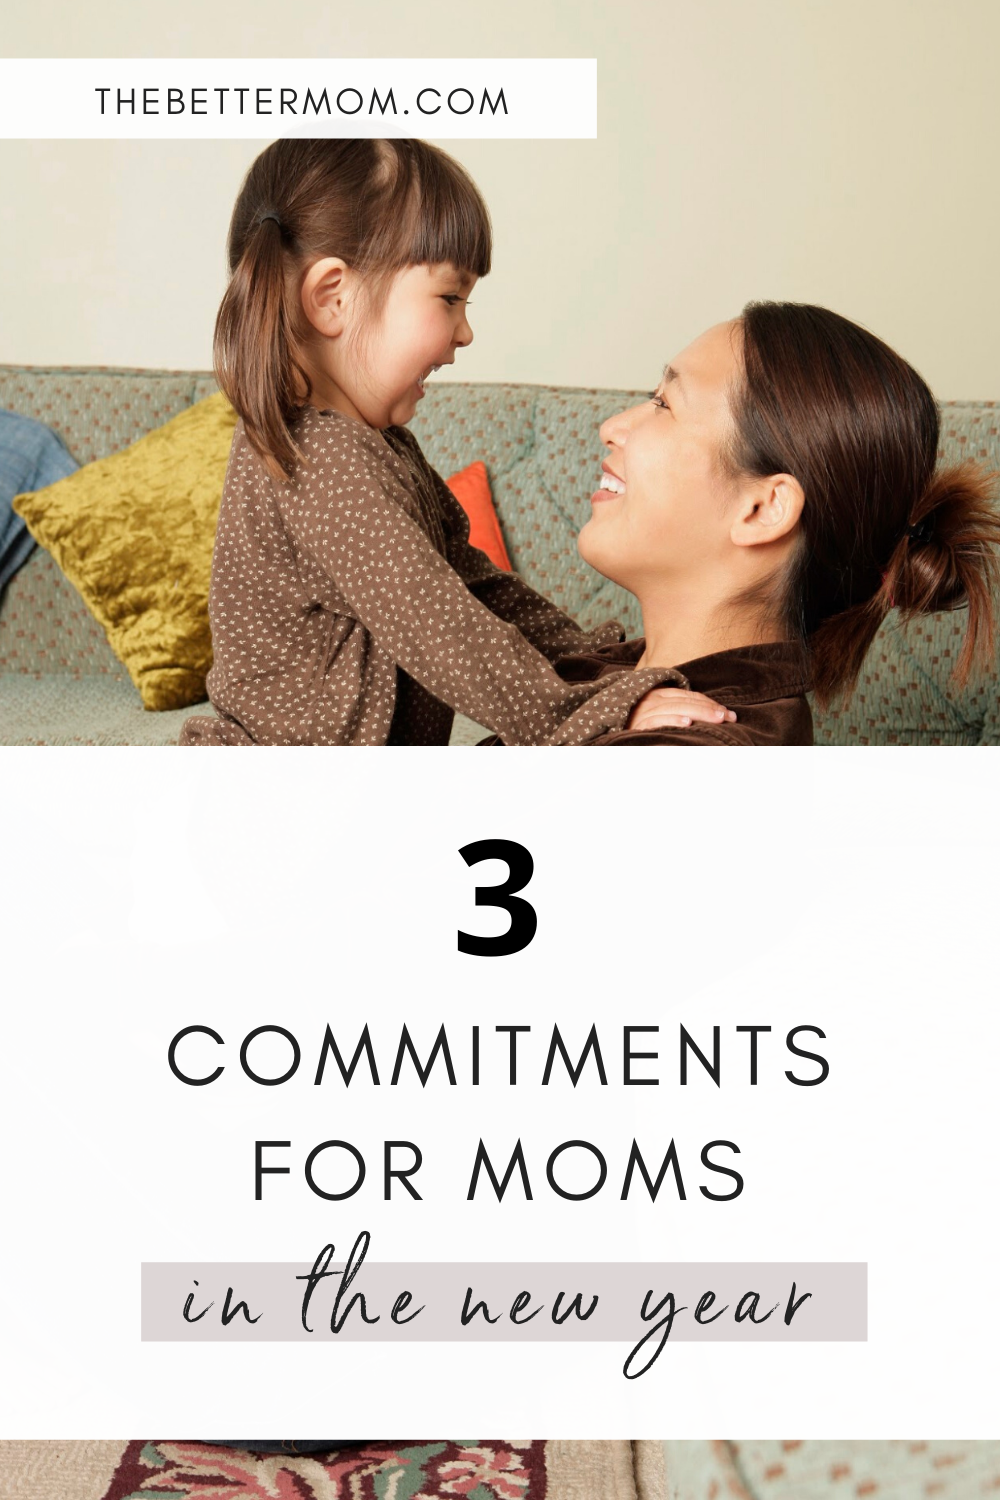 As we enter a New Year and make new goals let's not forget the important calling of Motherhood! What commitments will you make as a mom to serve your kids well? If you find yourself seeking grace and striving for growth as a mom in 2020, here are three commitments that we would love for you to work towards with us...